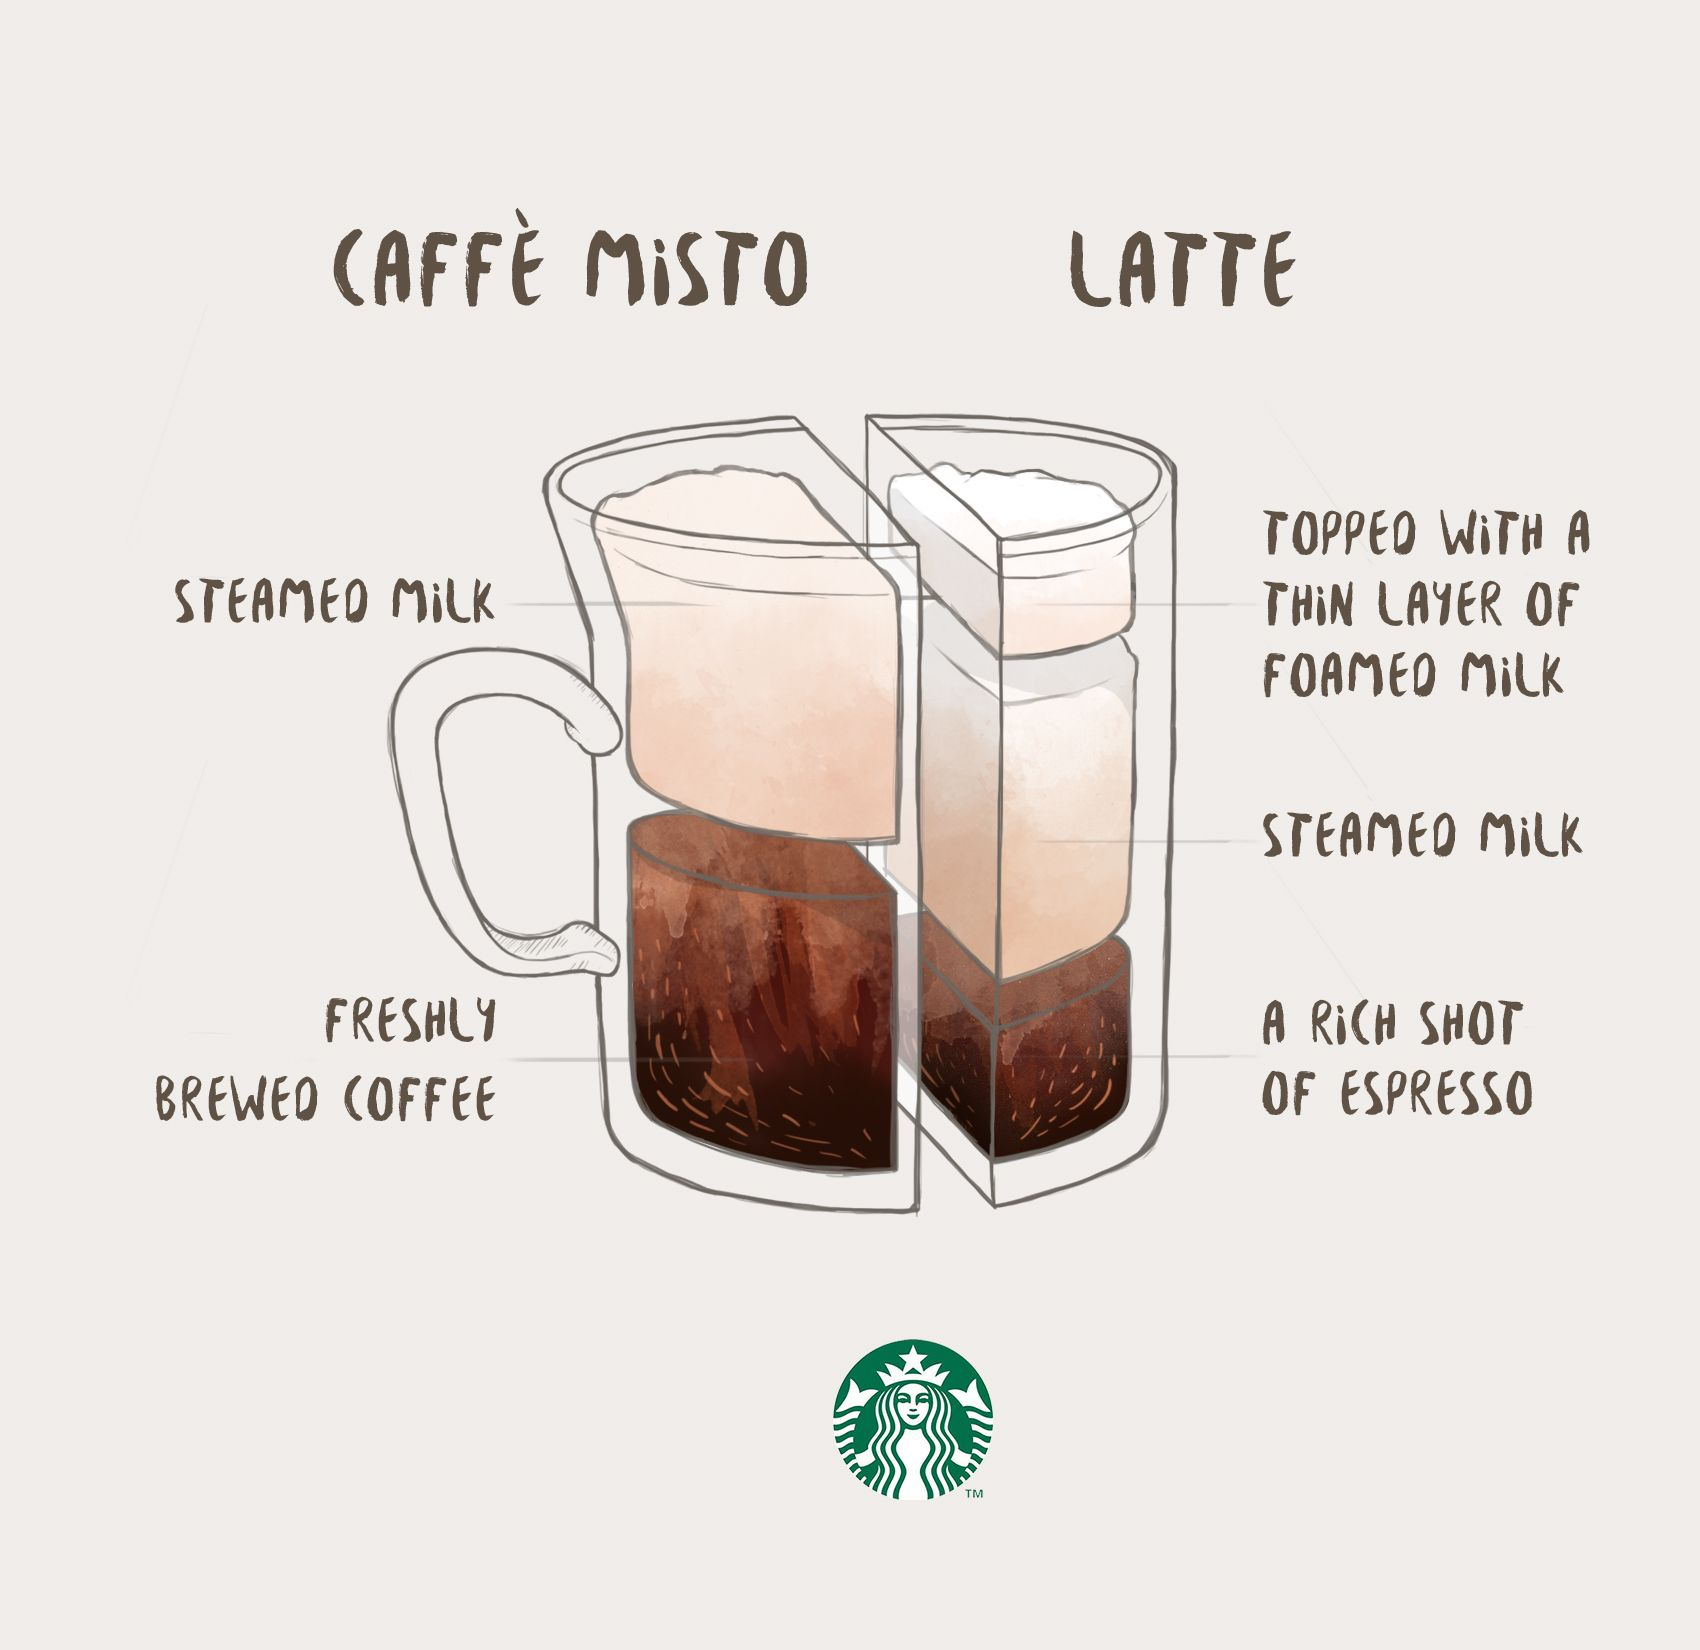 Coffee Americano Starbucks Caffè Misto Vs Latte In 2019 Everything I Love